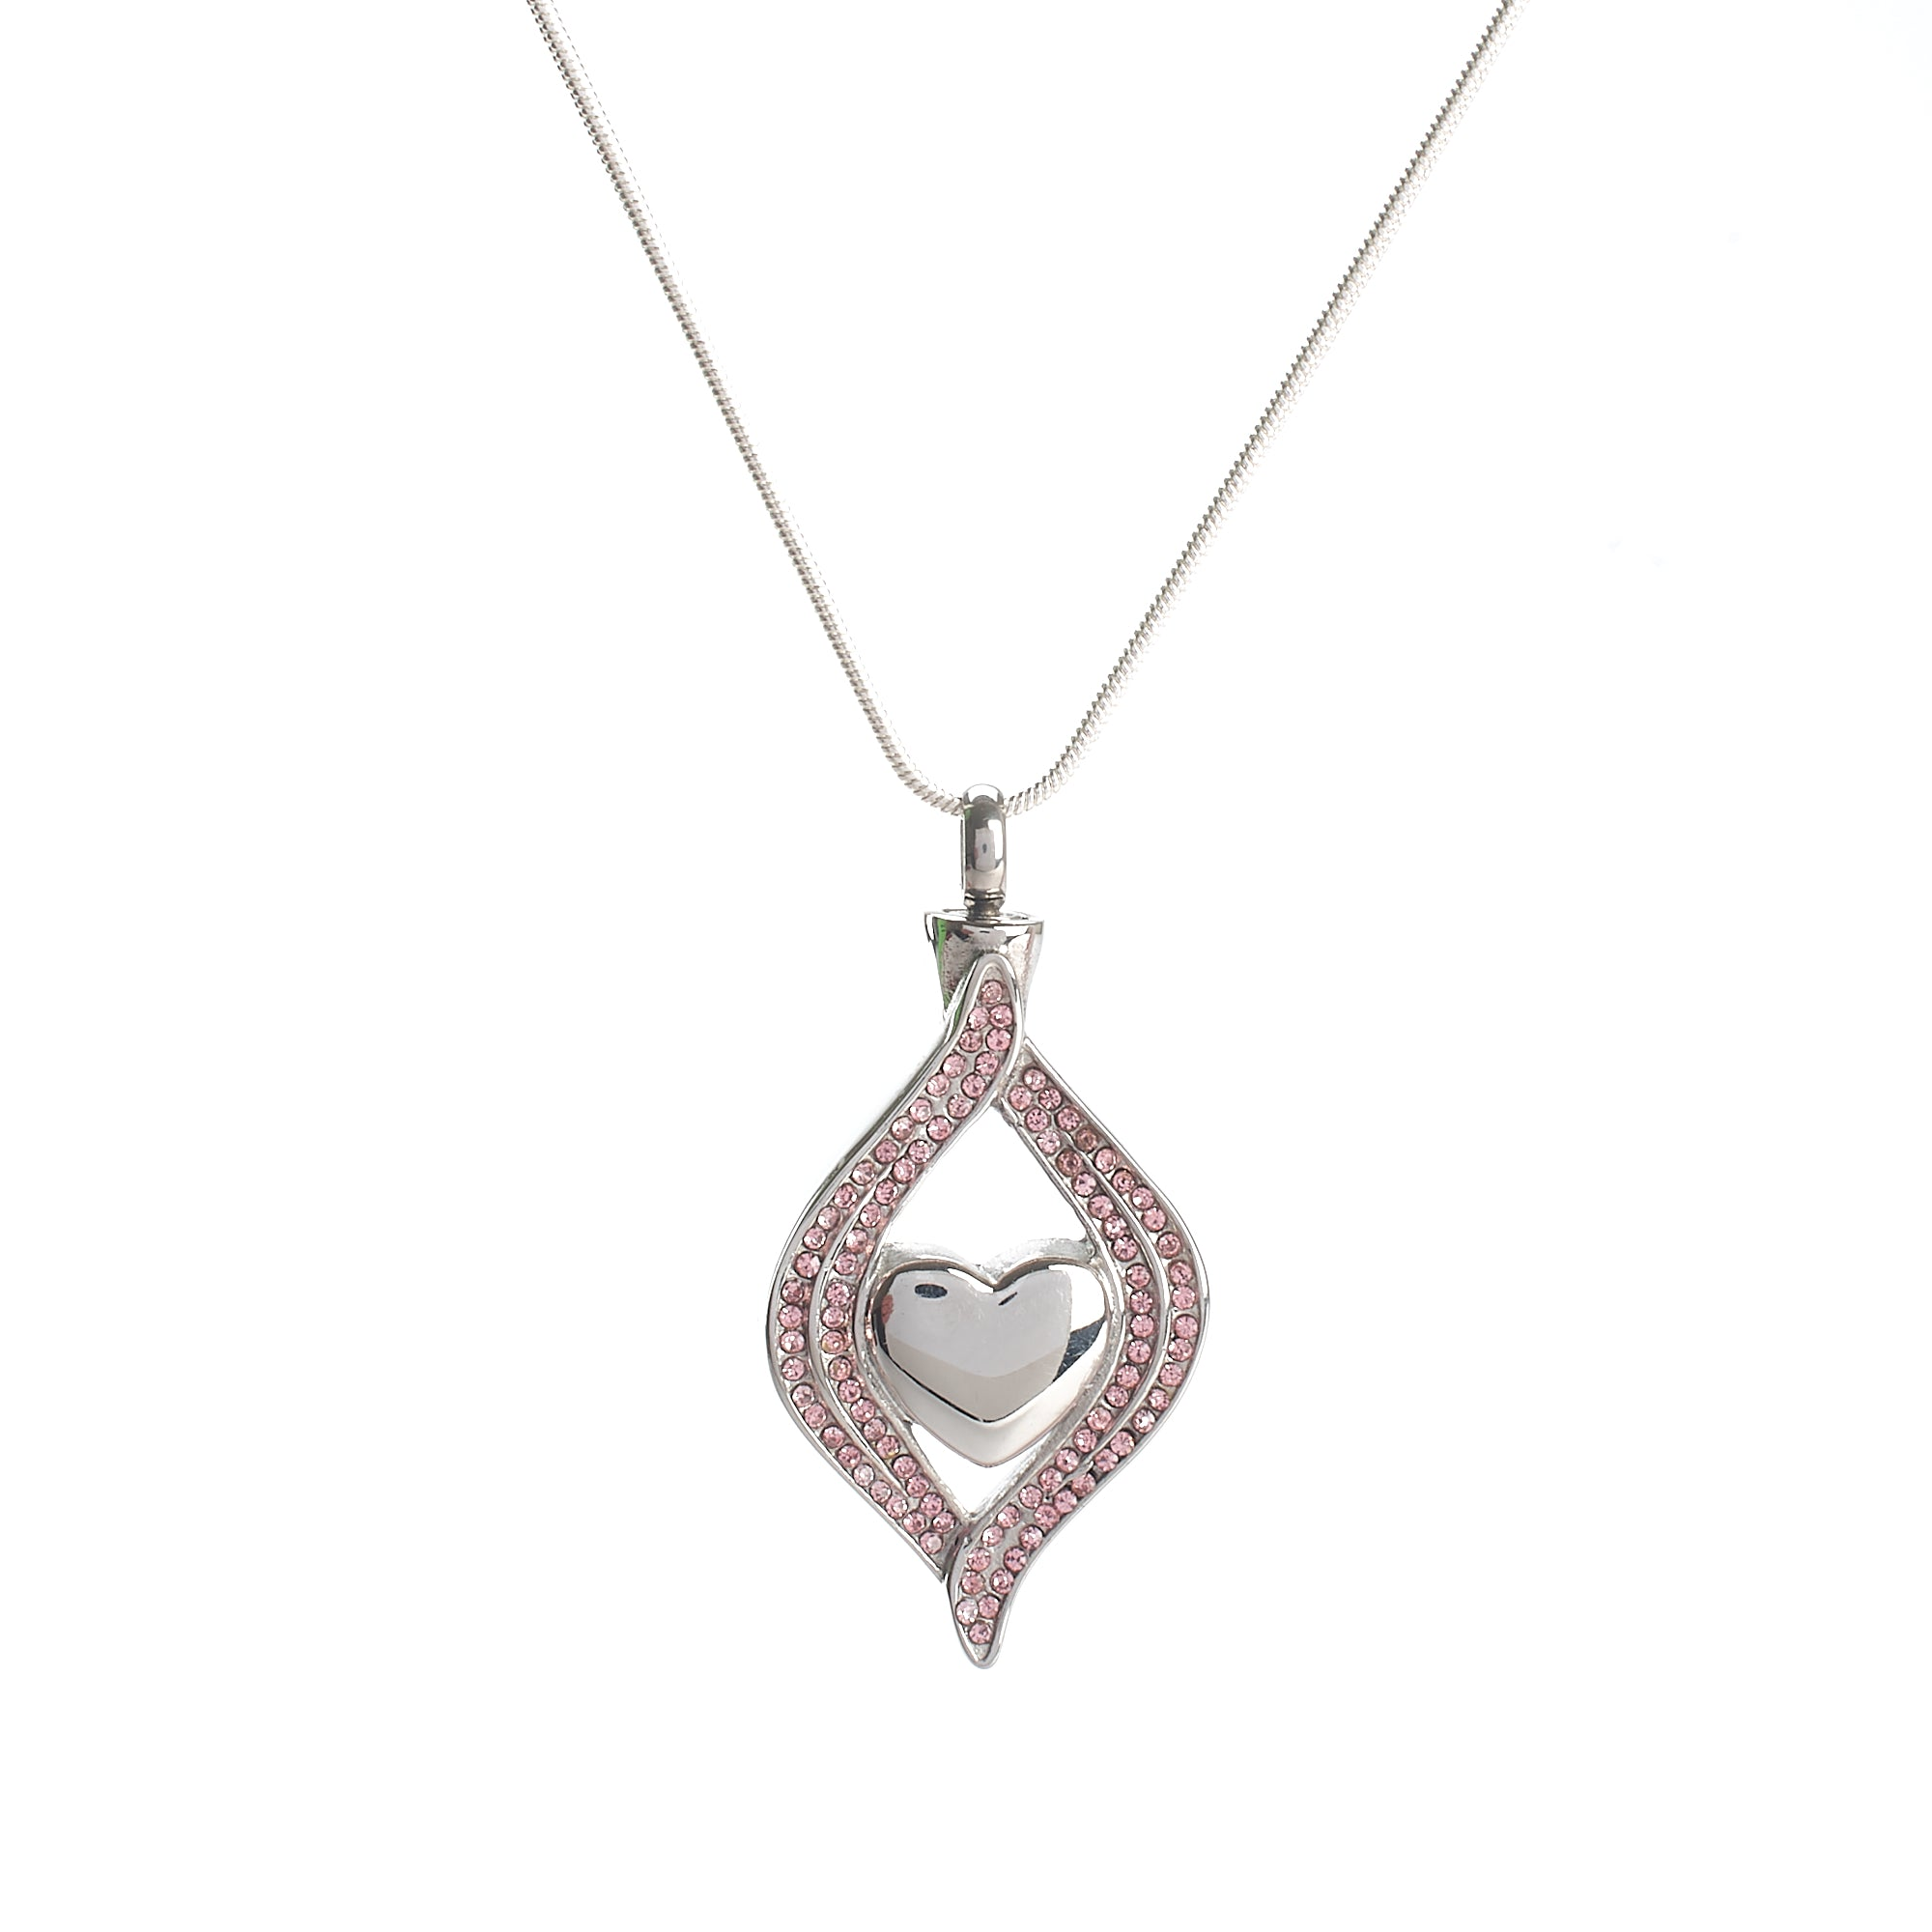 Cremation Pendant - Silver Heart in Pink Diamante Tear